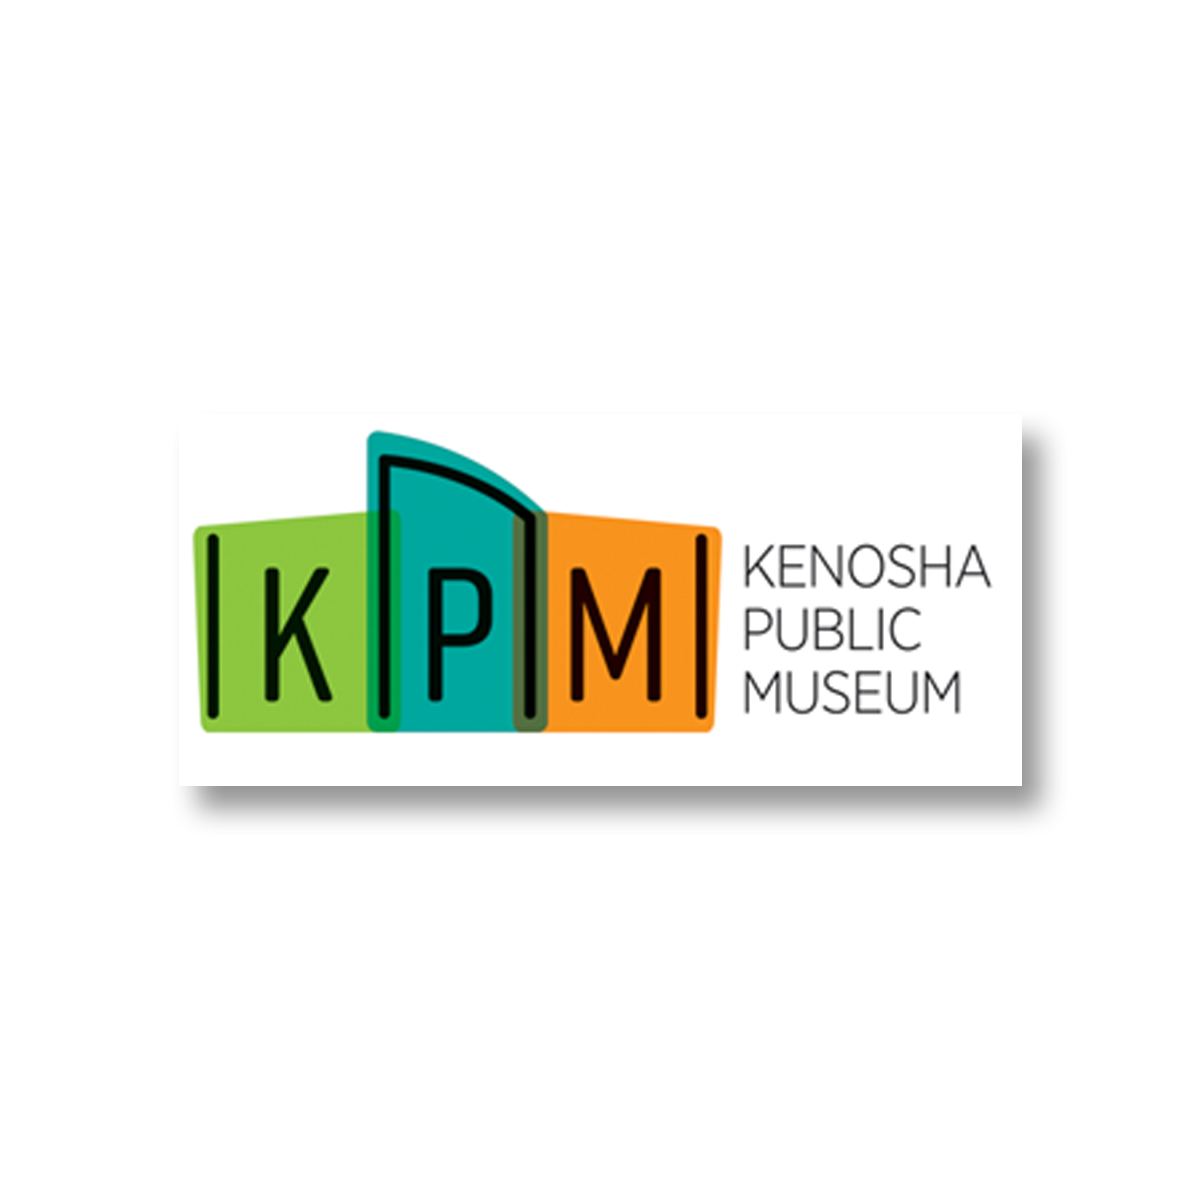 Kenosha Public Museum Commercial Branded Photography